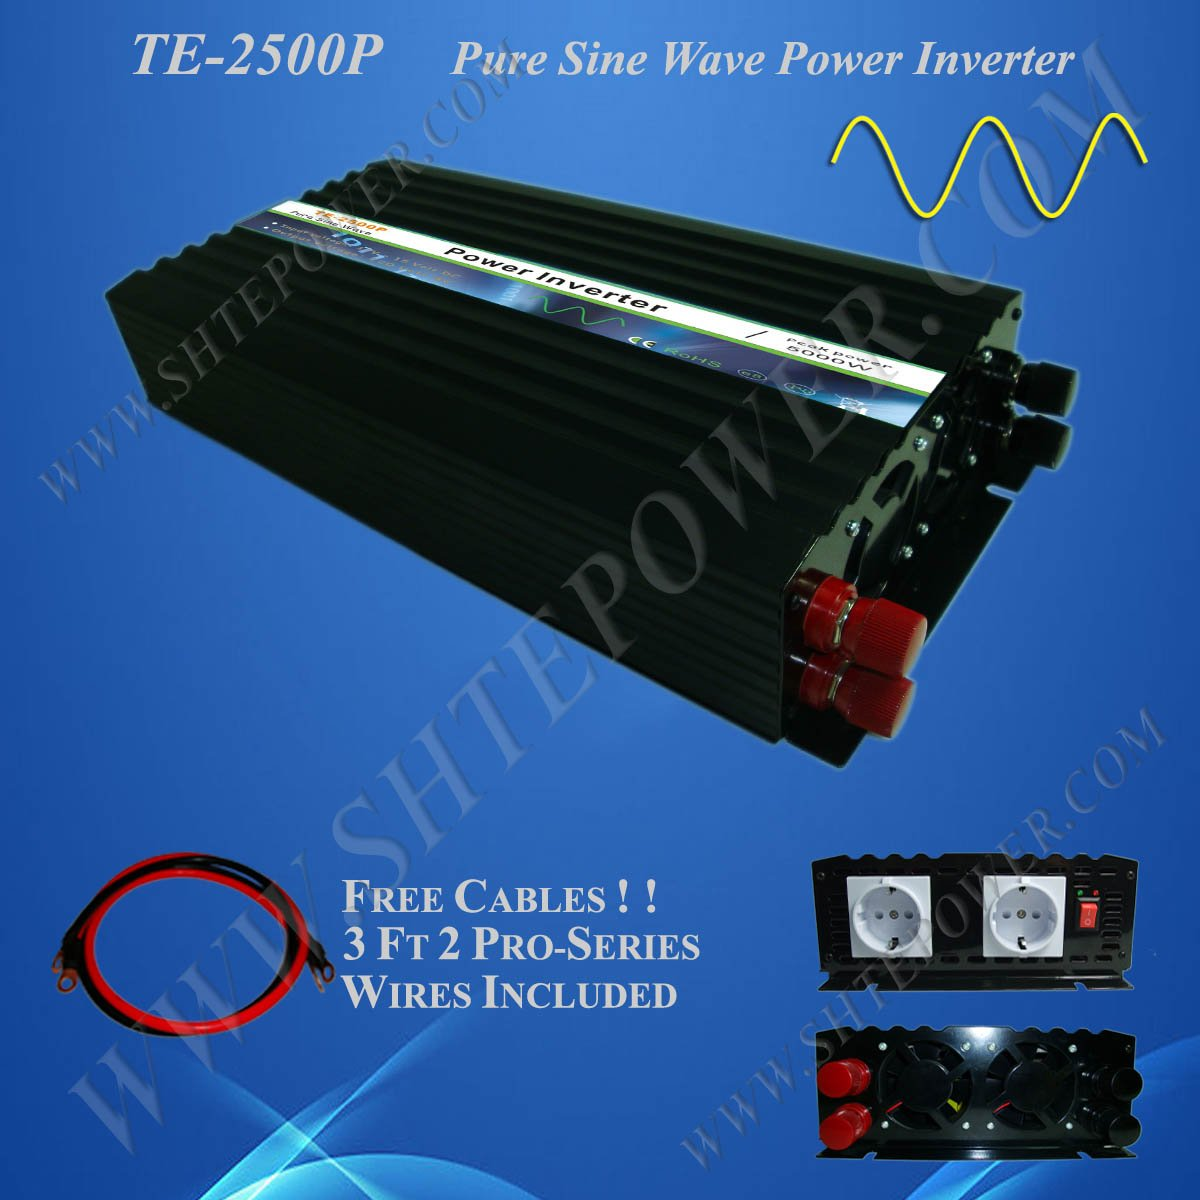 2500w Pure Sine Wave Inverter, Solar Power Invertor, DC 48v to AC 230v Power Inverter ноутбук hp omen 15 ce008ur 1zb02ea core i5 7300hq 8gb 1tb nv gtx1050 4gb 15 6 fullhd win10 black